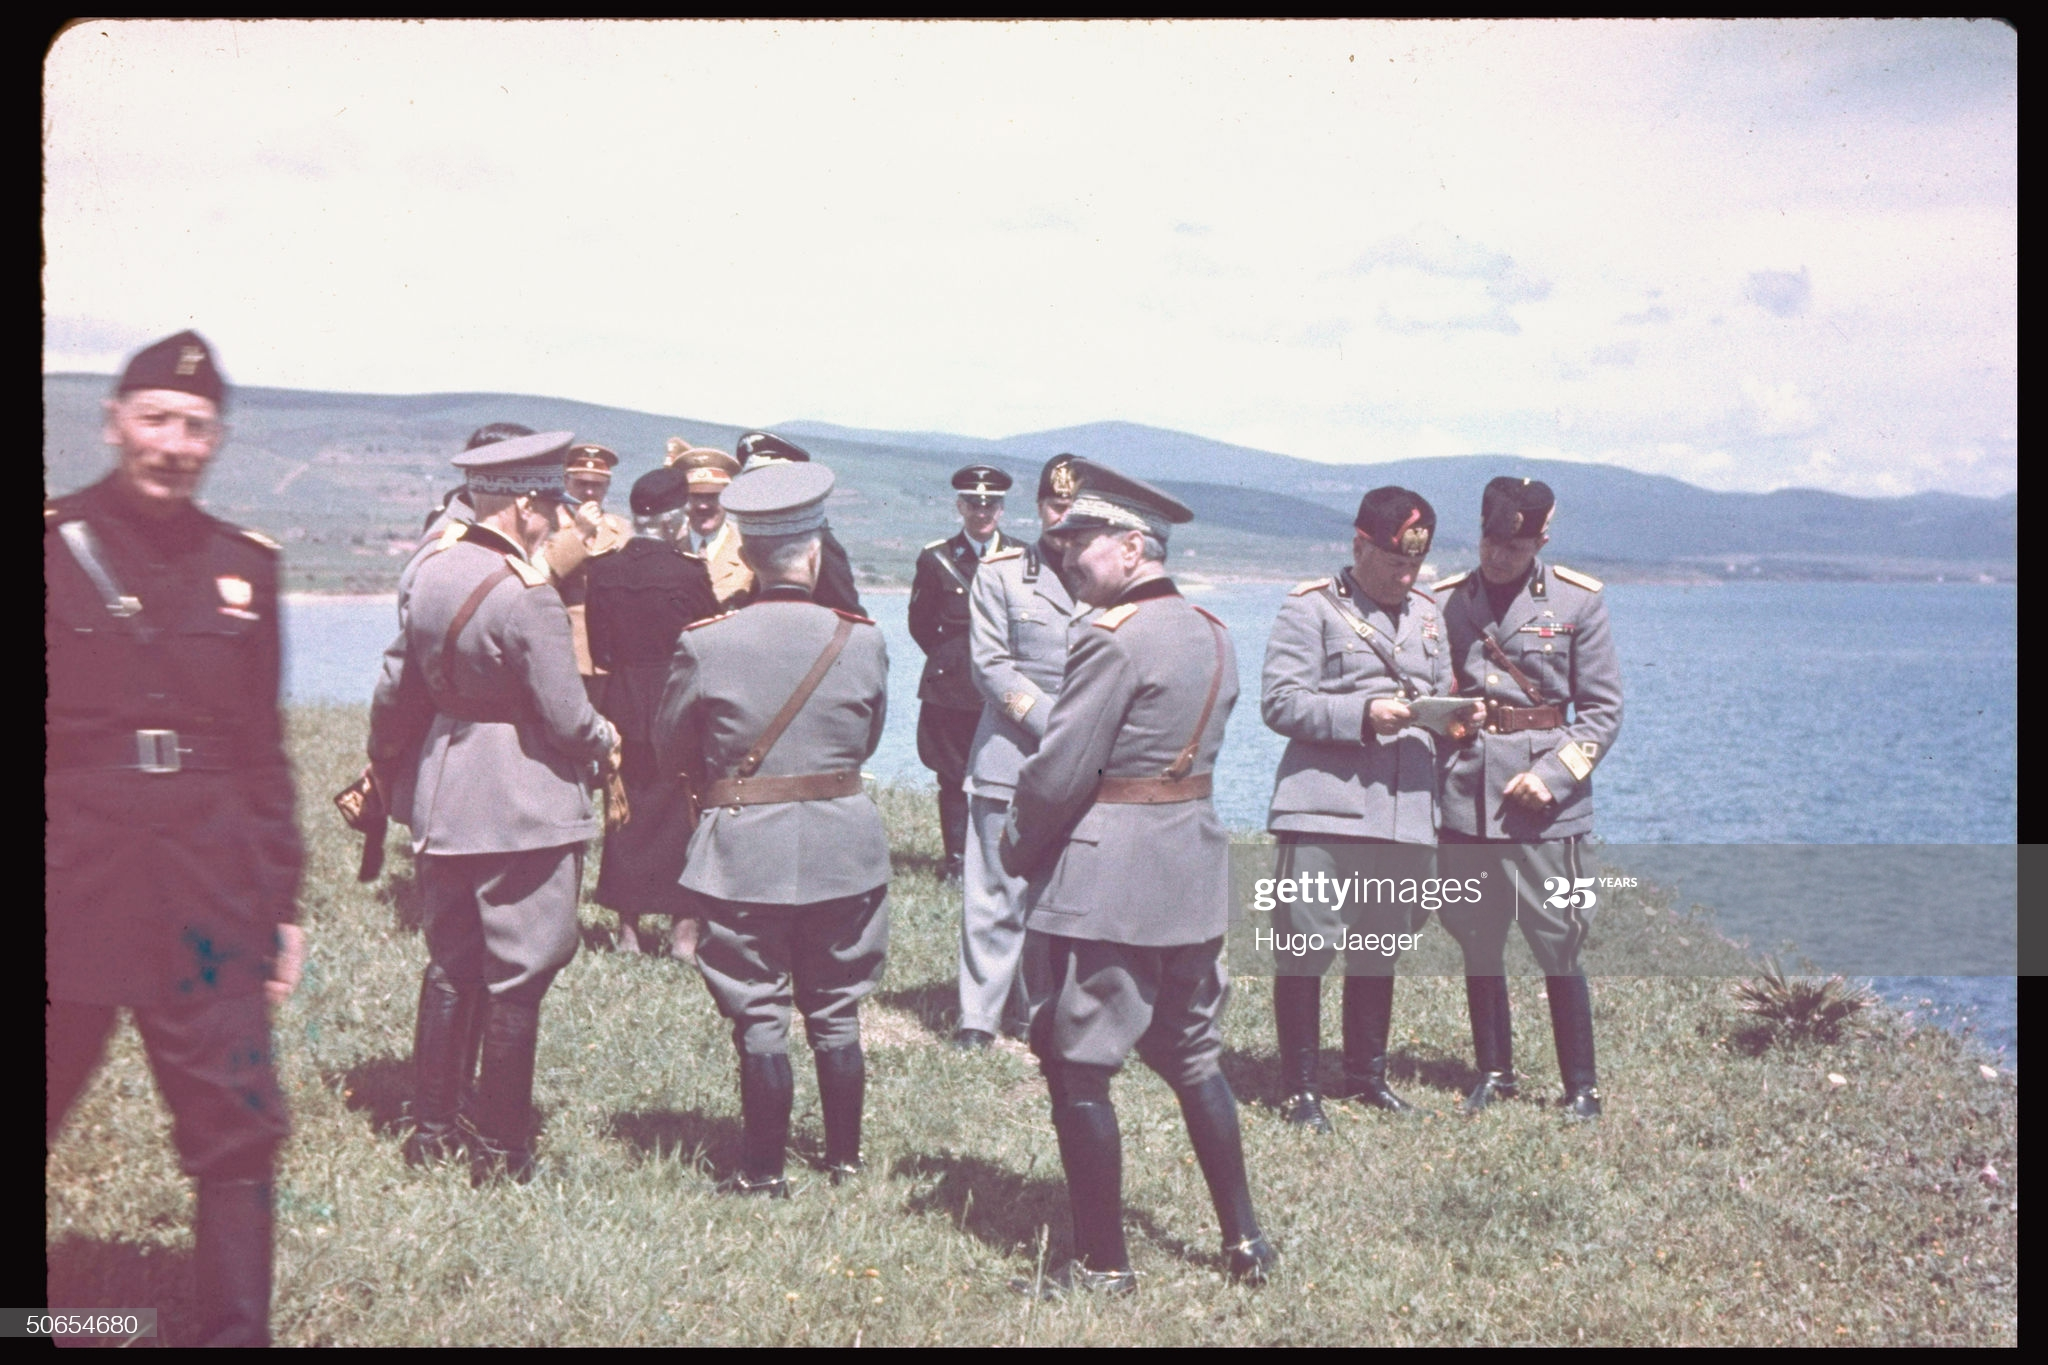 Color photos of Benito Mussolini and Adolf Hitler